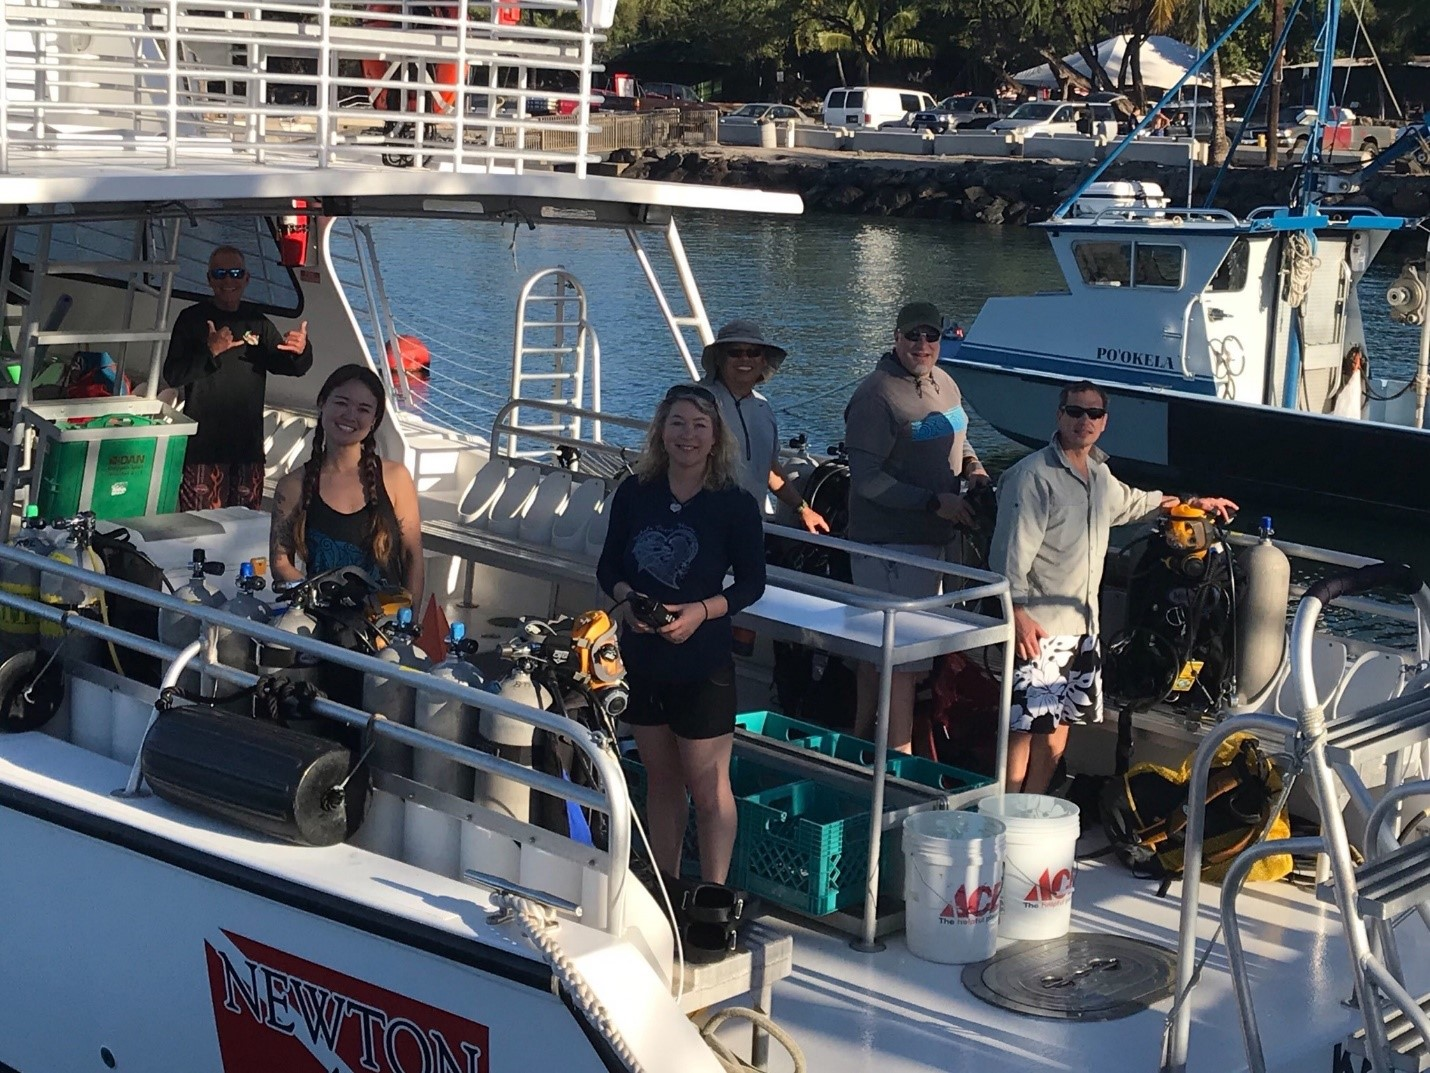 Crew on Kohala Divers boat going out to survey sites 1, 2 and 5, all near Puako.